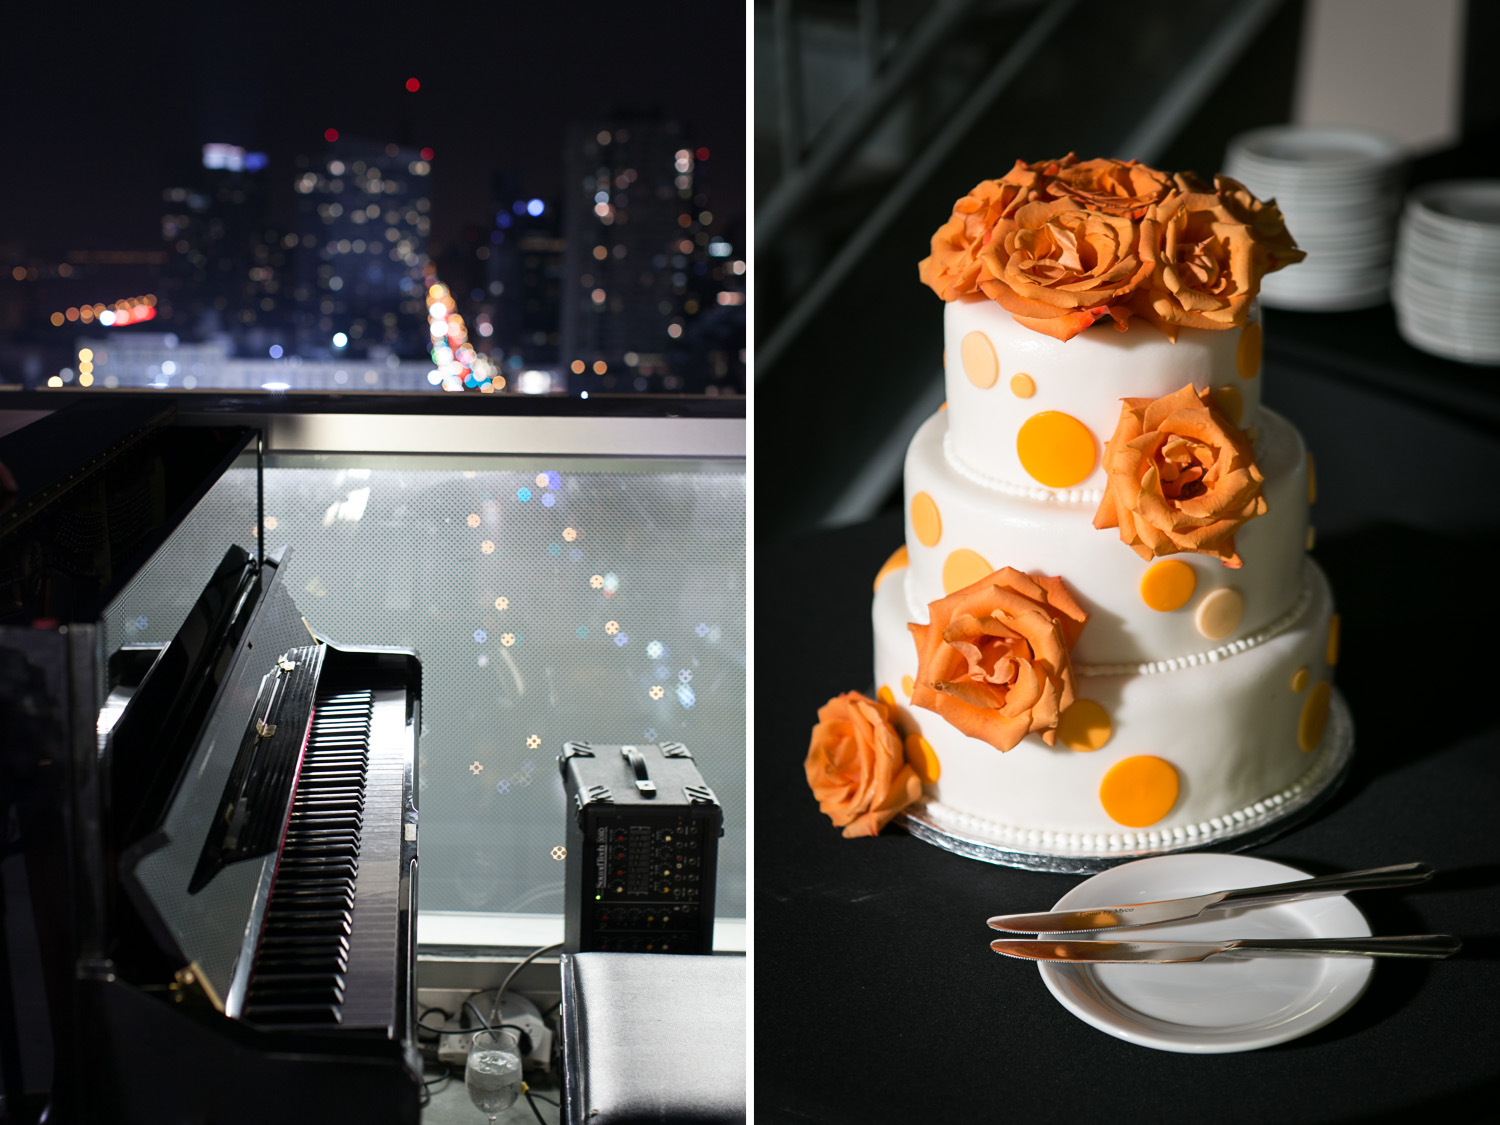 This image is a diptych which shows two wedding photographs from Jane and Larry's intimate wedding at Ink 48 in Manhattan, New York in the fall. Since it was an autumn wedding, Jane chose a beautiful orange color to be used in her invitations and decor, including here on the wedding cake, which was a three-tiered masterpiece with white frosting and orange roses. On the left is the piano that the groom, Larry, stepped in to play throughout the night.